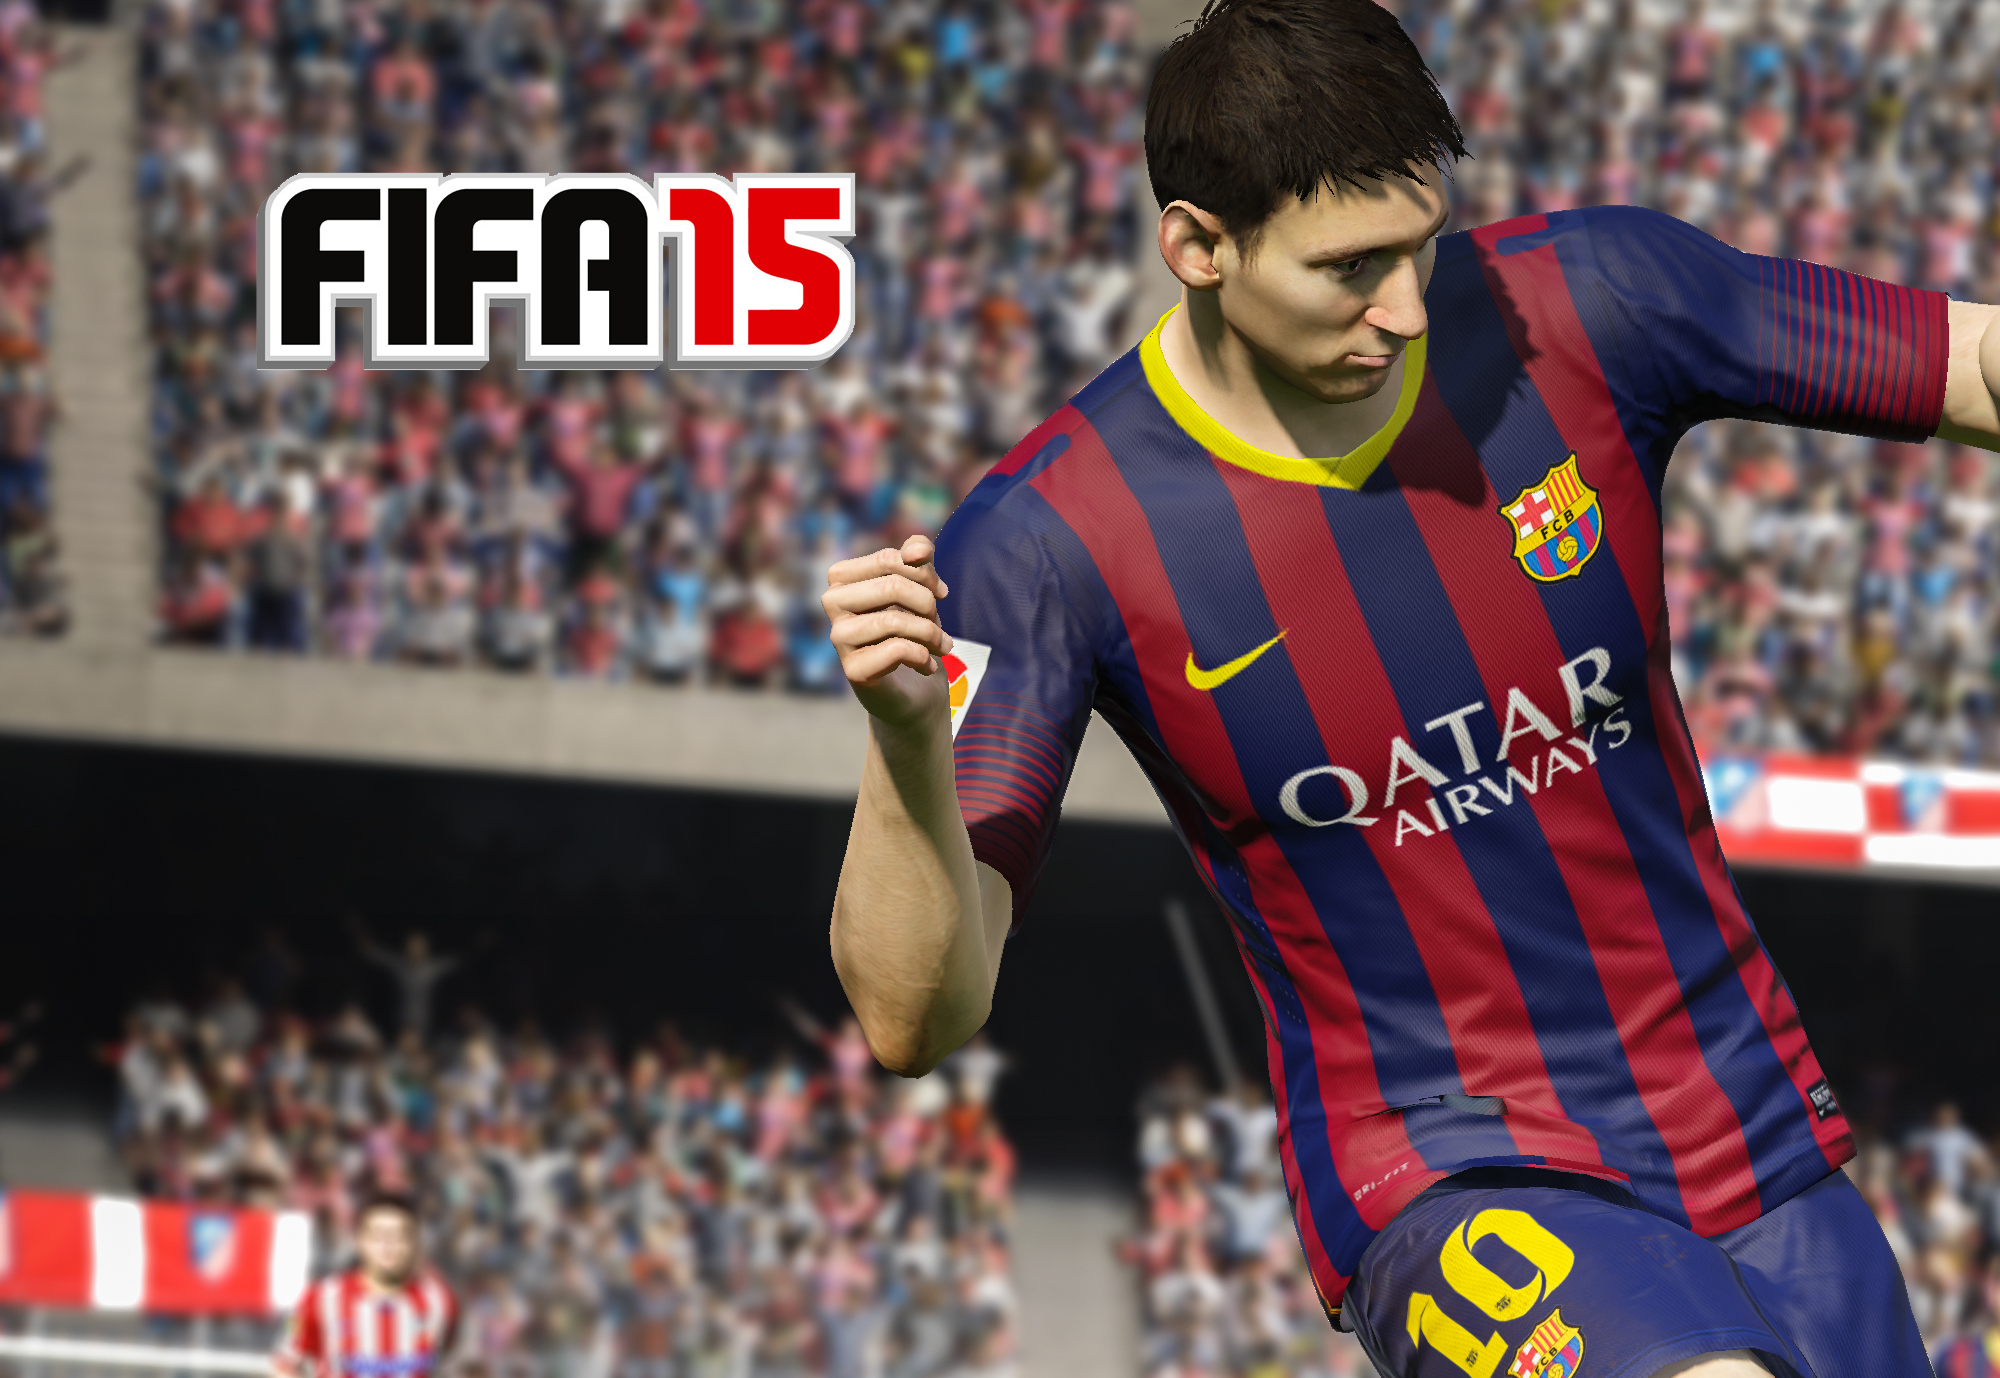 Collection of FIFA 15 Widescreen Wallpapers: 39017844, 2000x1378 px